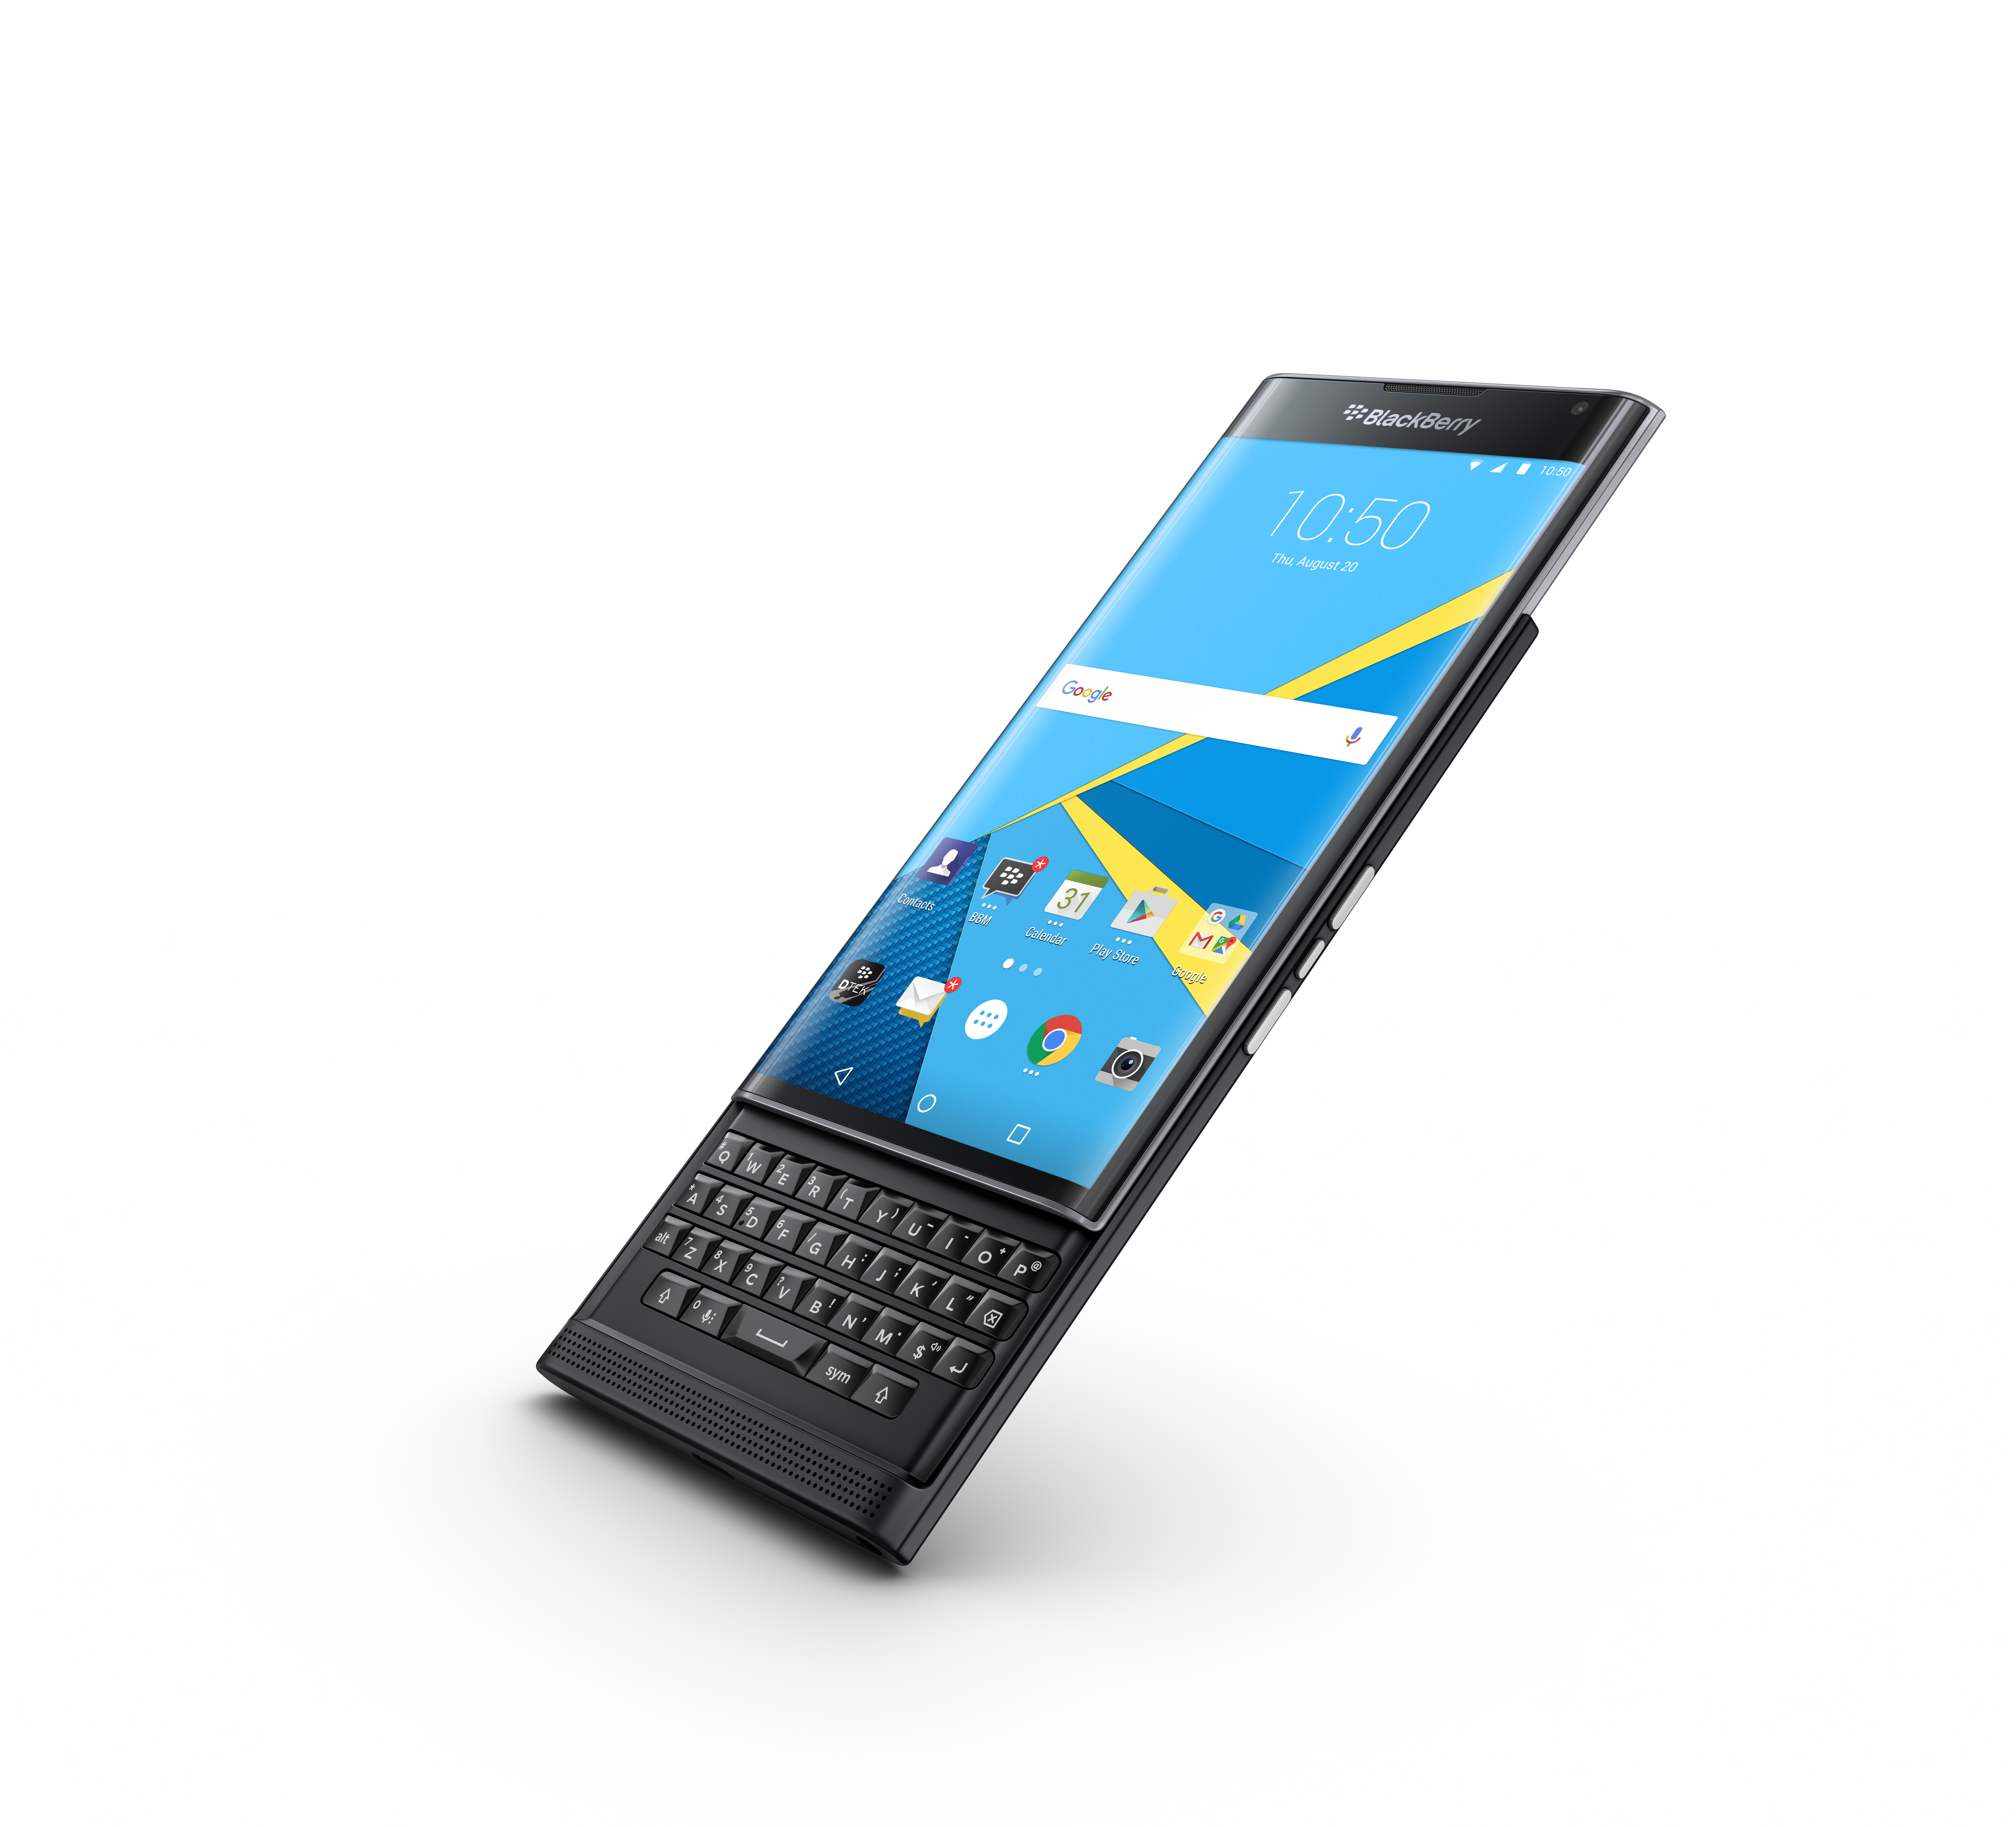 The BlackBerry Priv runs Android, Google's operating system.